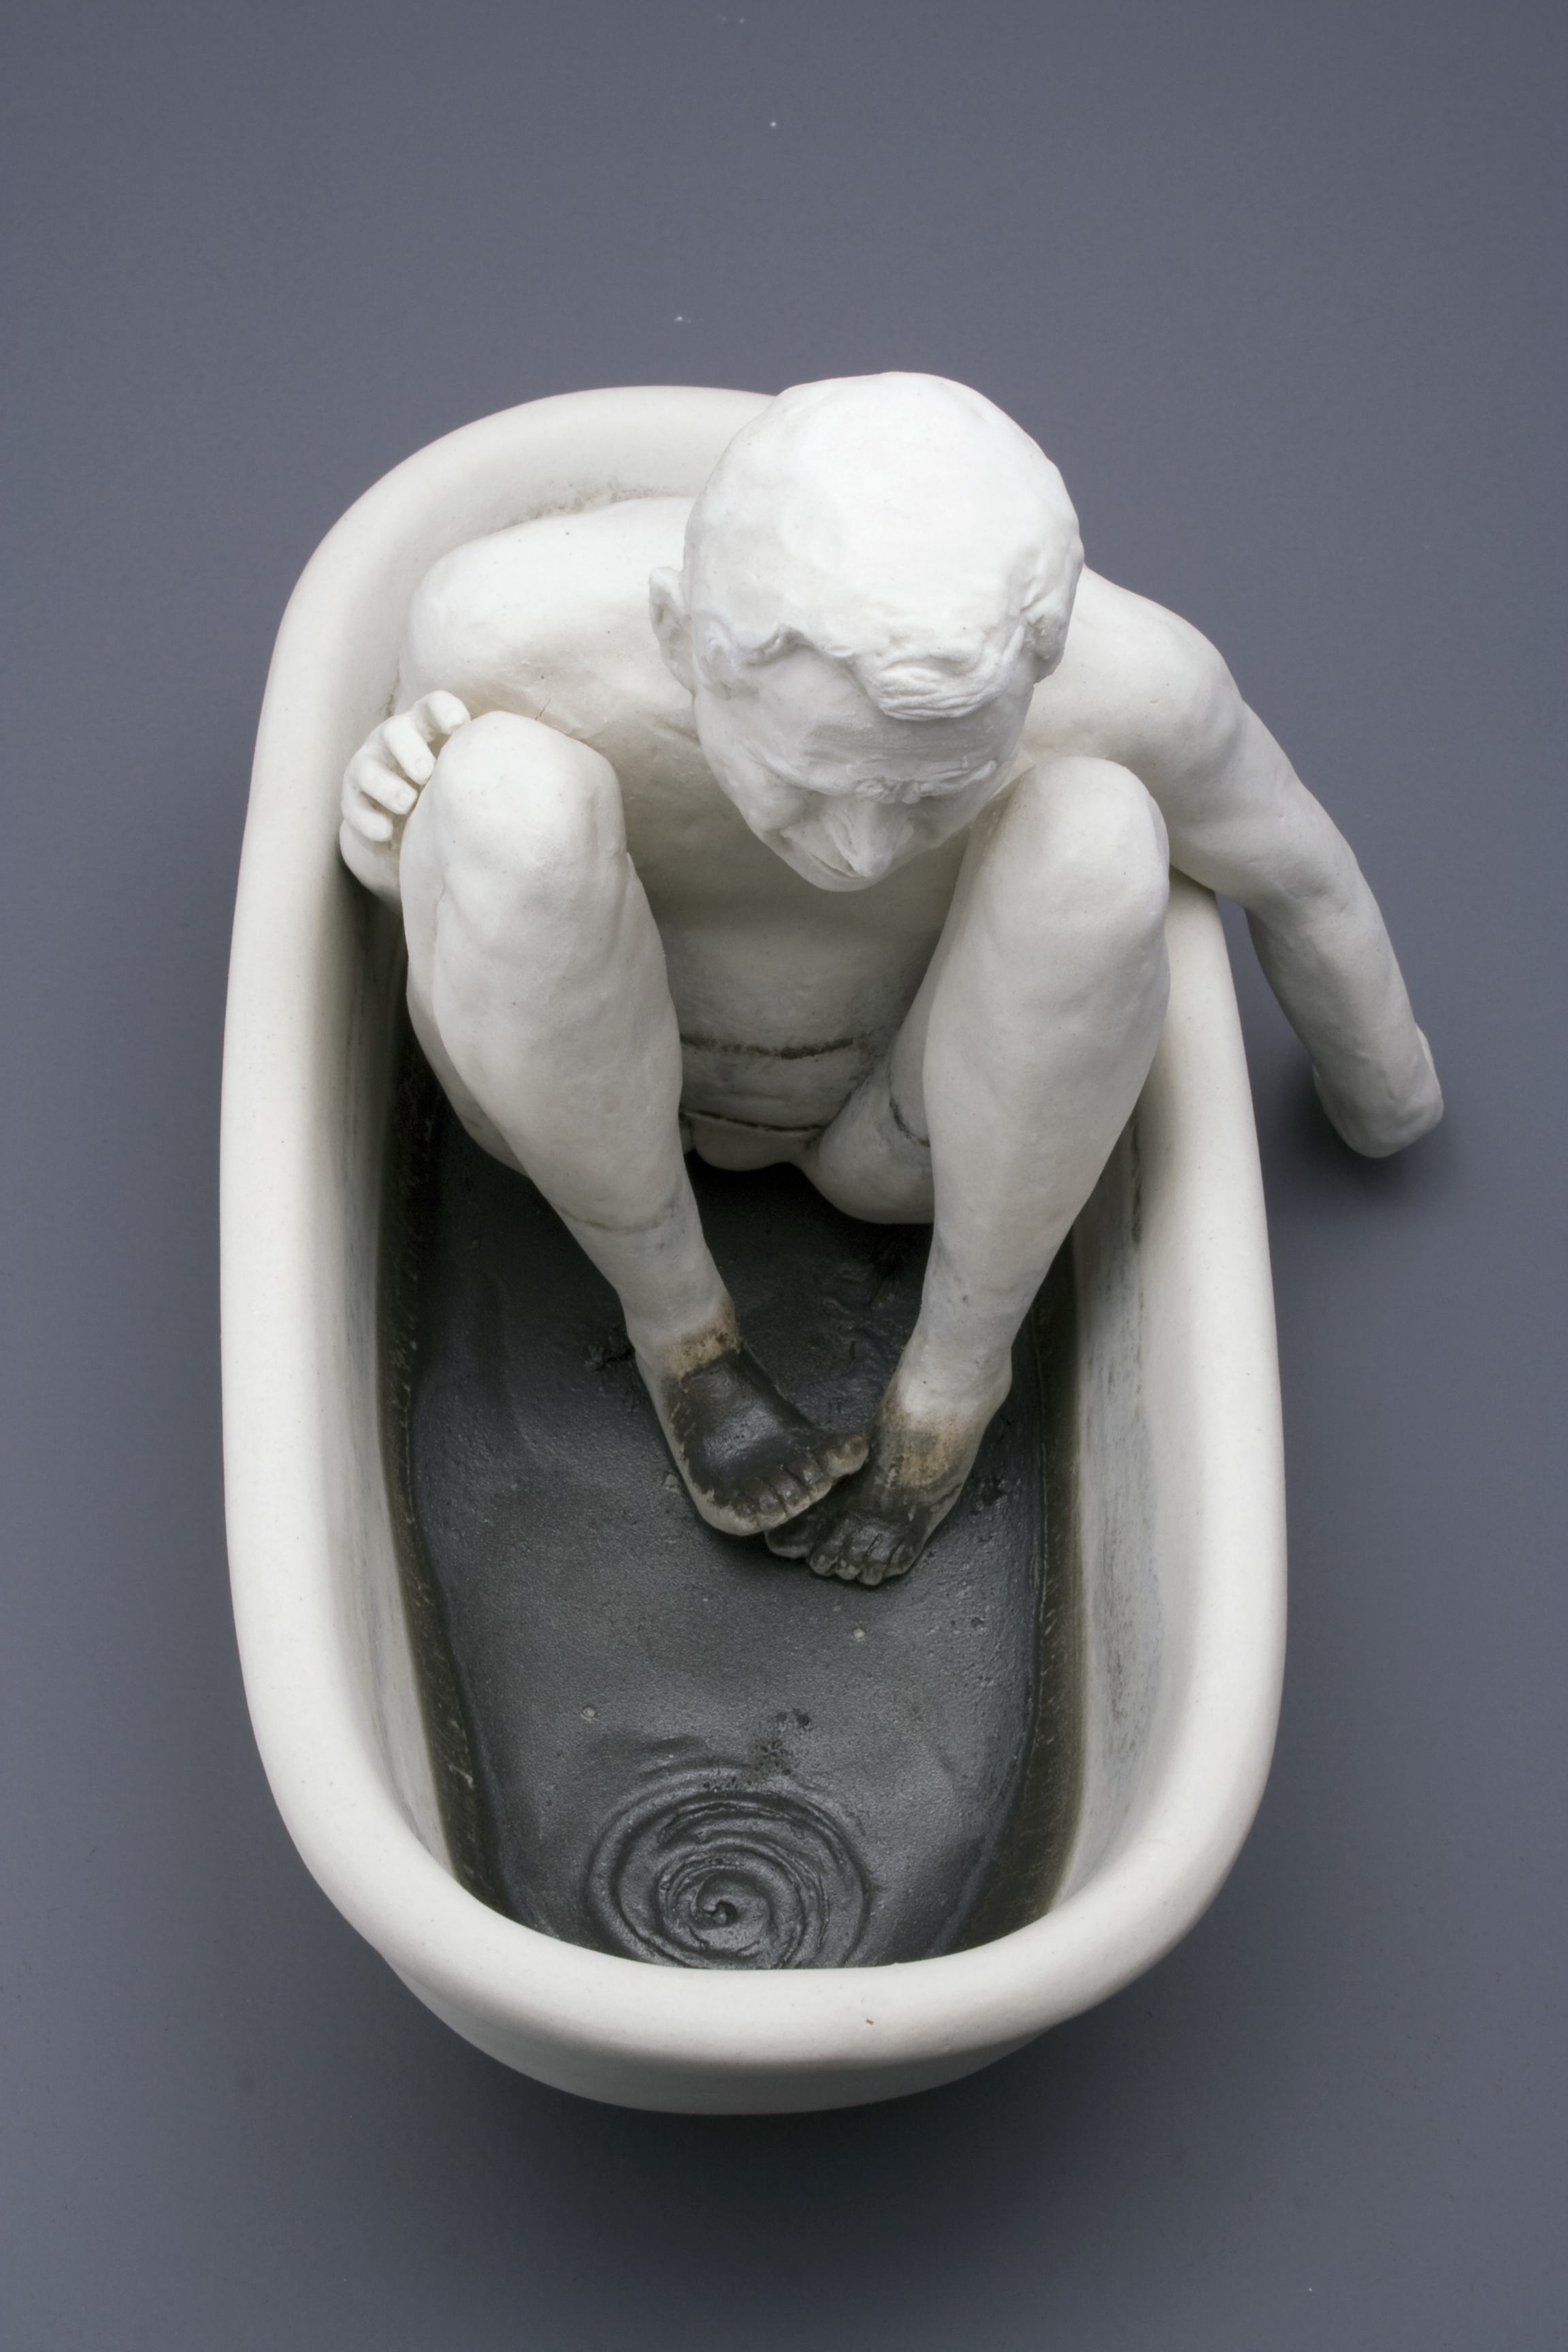 """Oil and Water   Porcelain and low-fire glaze. 7""""h x 5""""w x 9.5""""d.  2005-2006"""